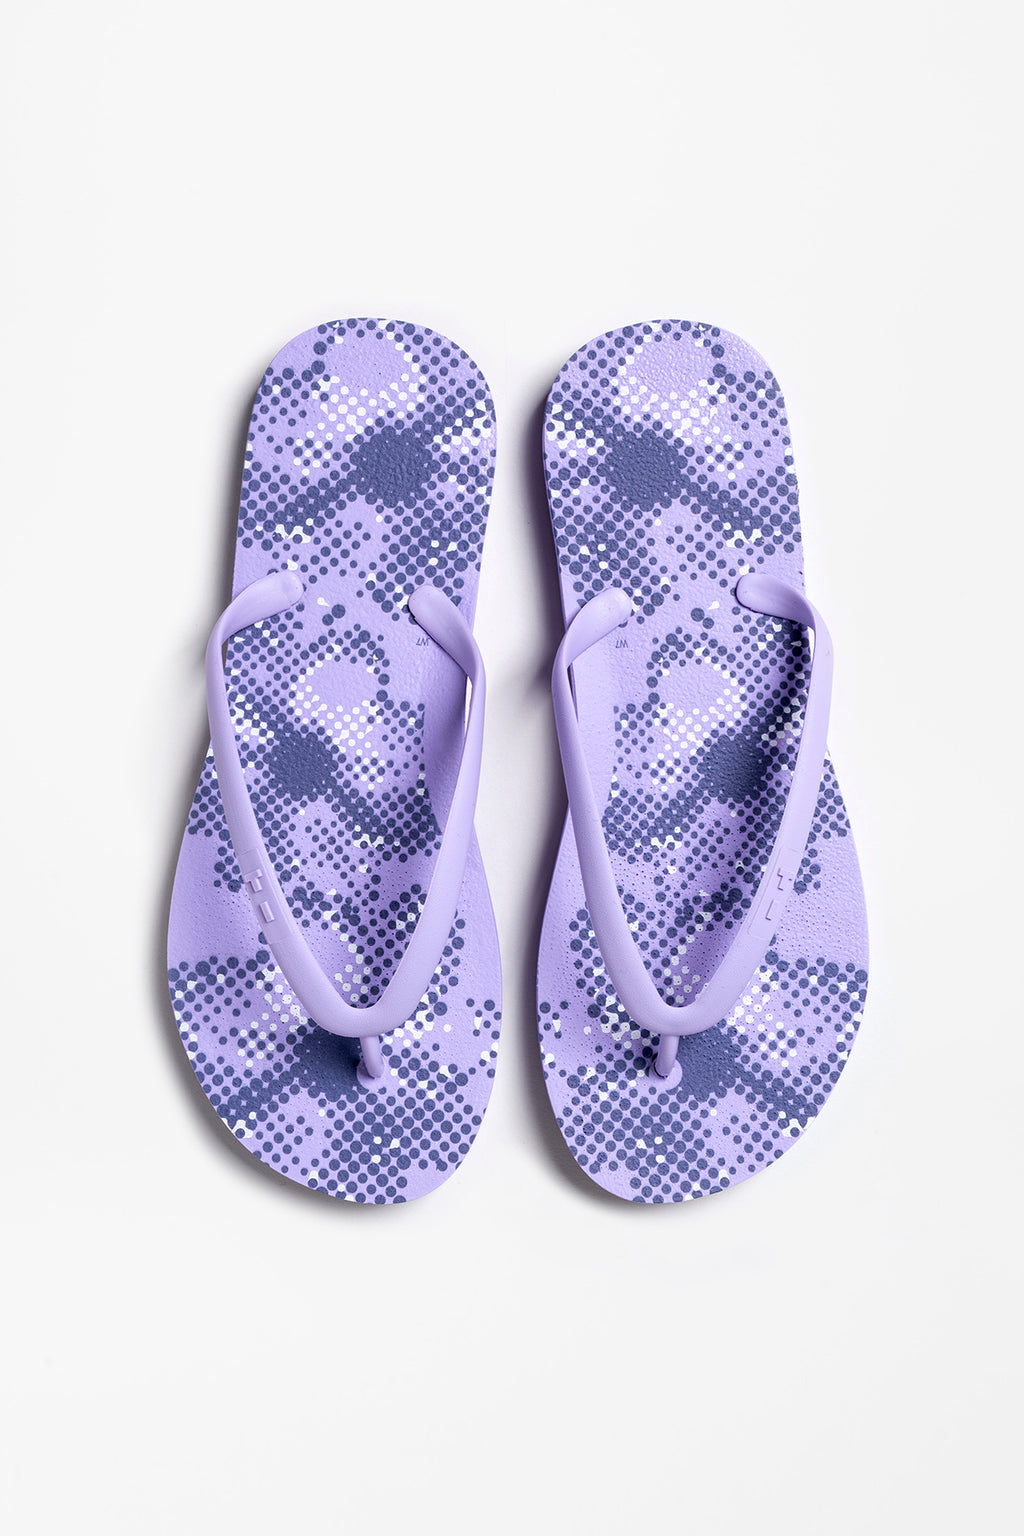 Purple women's flip flops with flower print